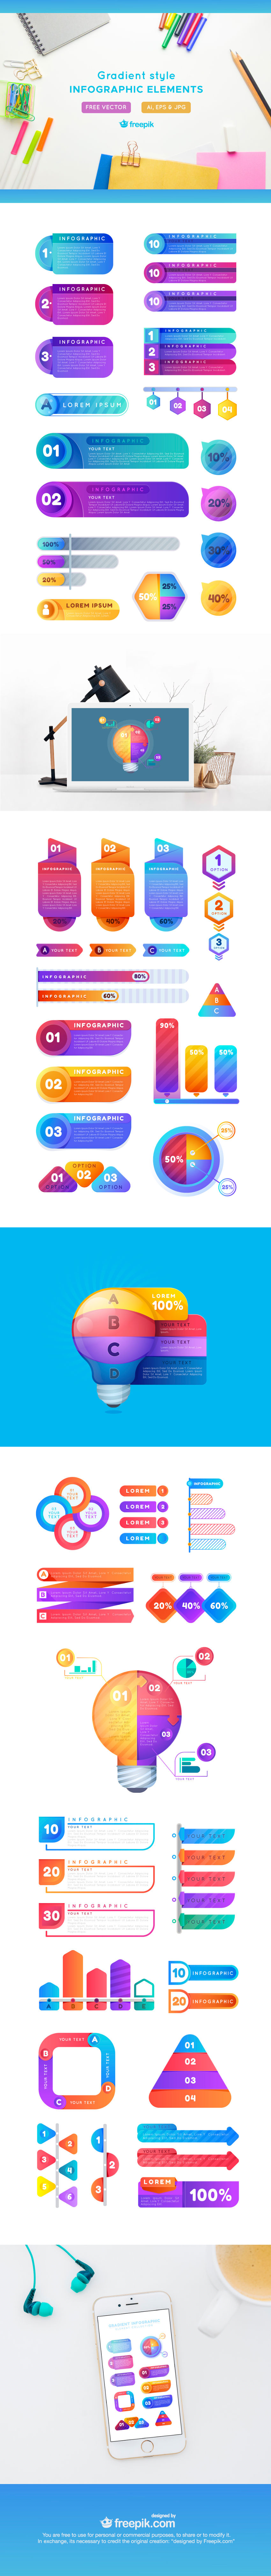 Free Infographic Elements Gradient Style